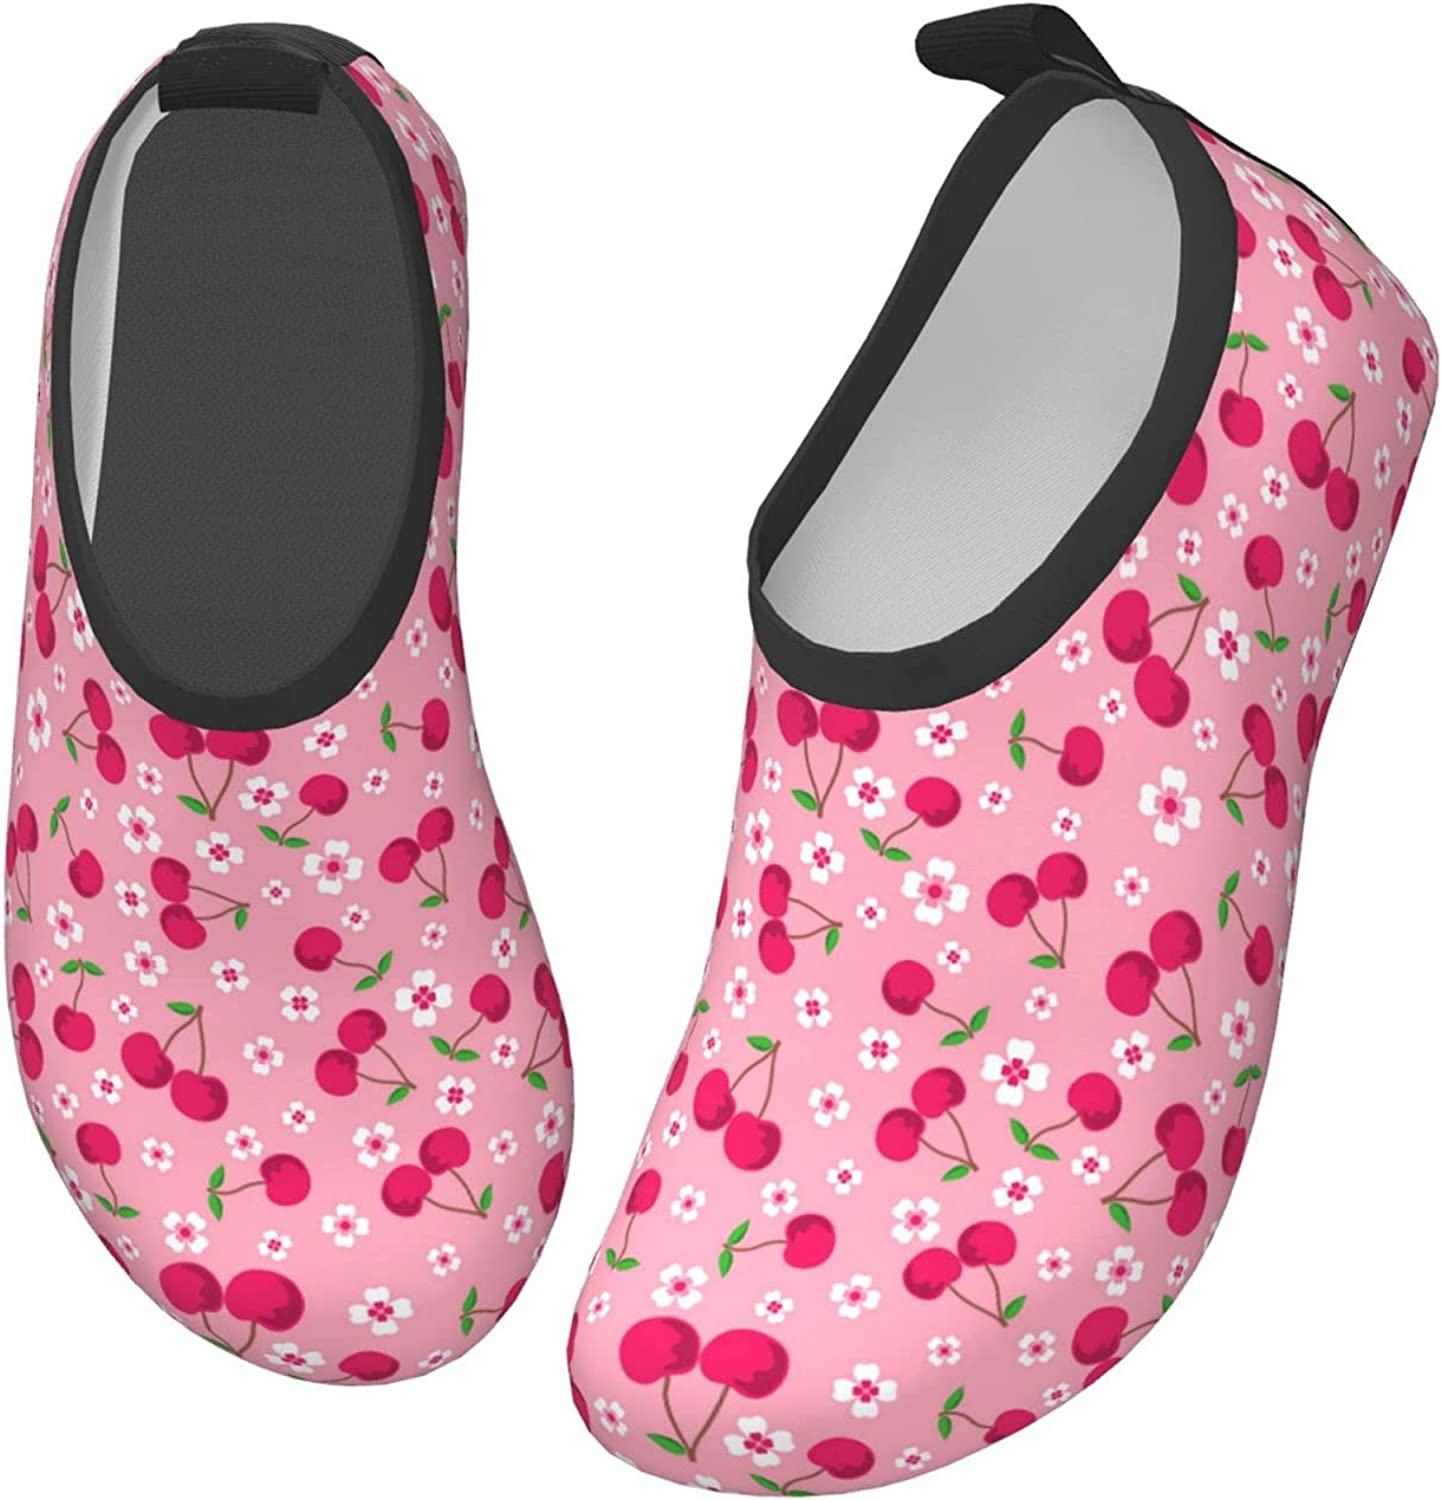 Jedenkuku Cherry Cute Fruit Pink Flowers Children's Water Shoes Feel Barefoot for Swimming Beach Boating Surfing Yoga